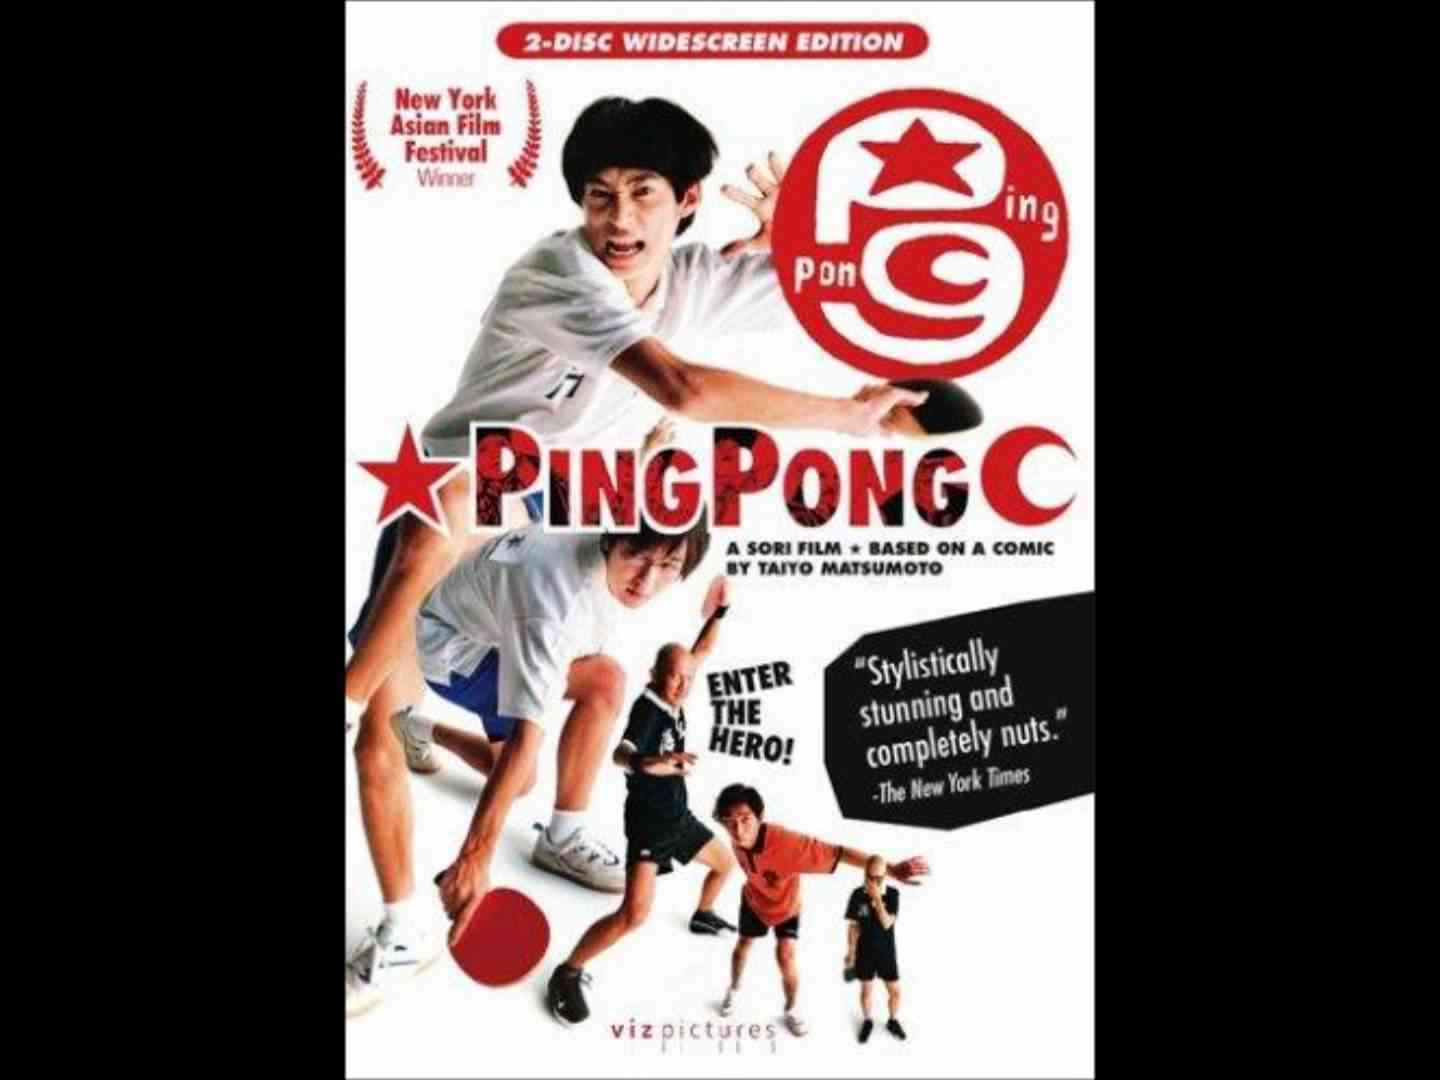 Ping Pong Original Soundtrack - Strobolights - YouTube